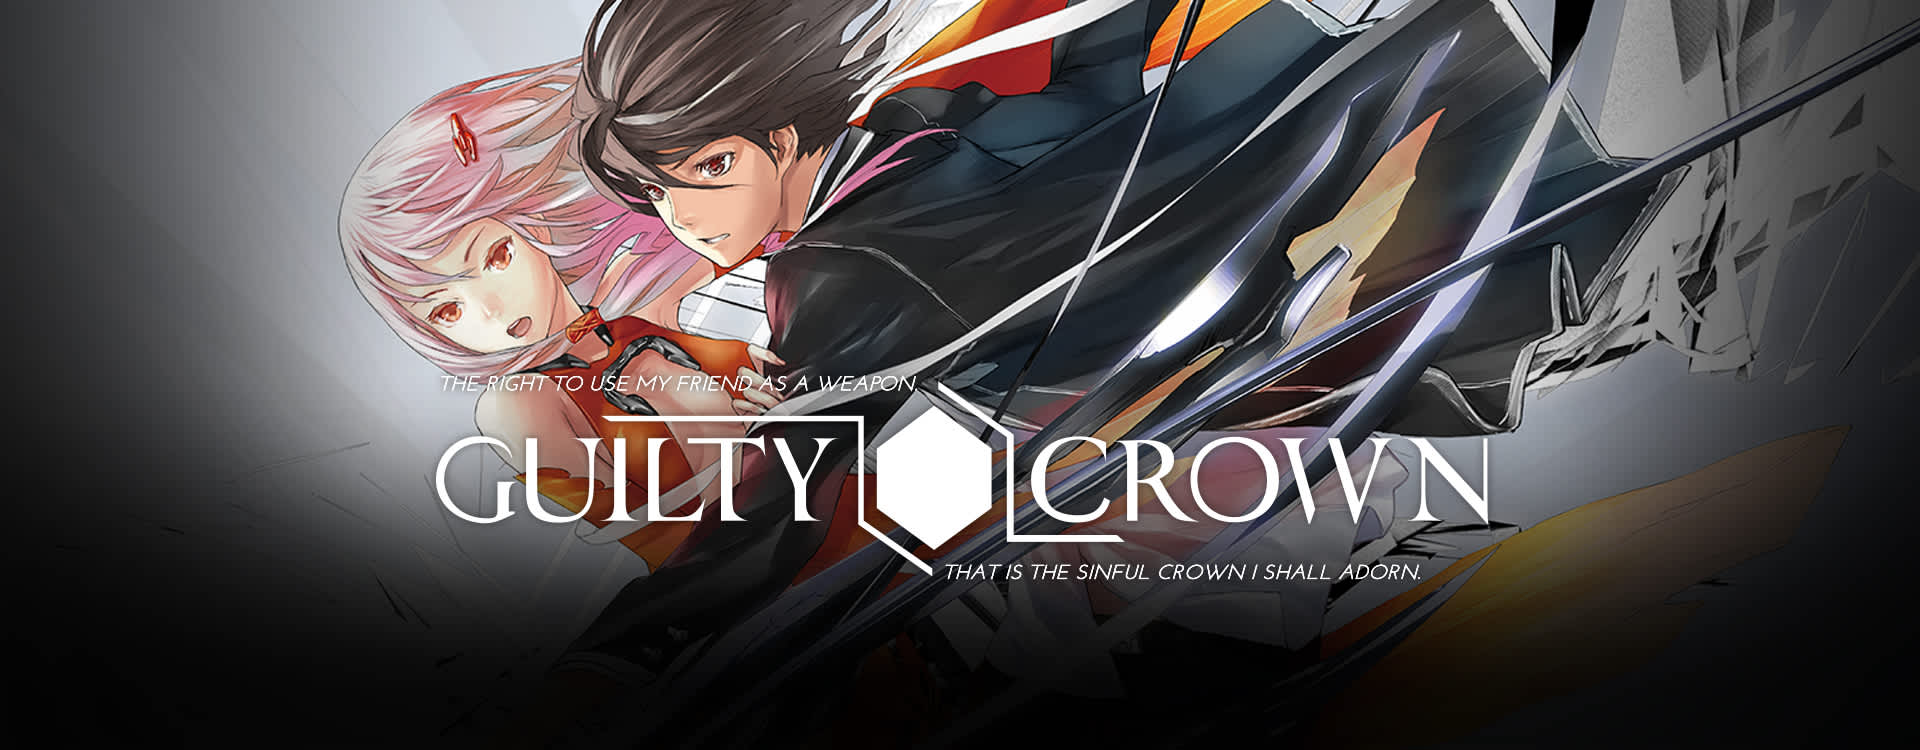 Music Song Guilty Crown